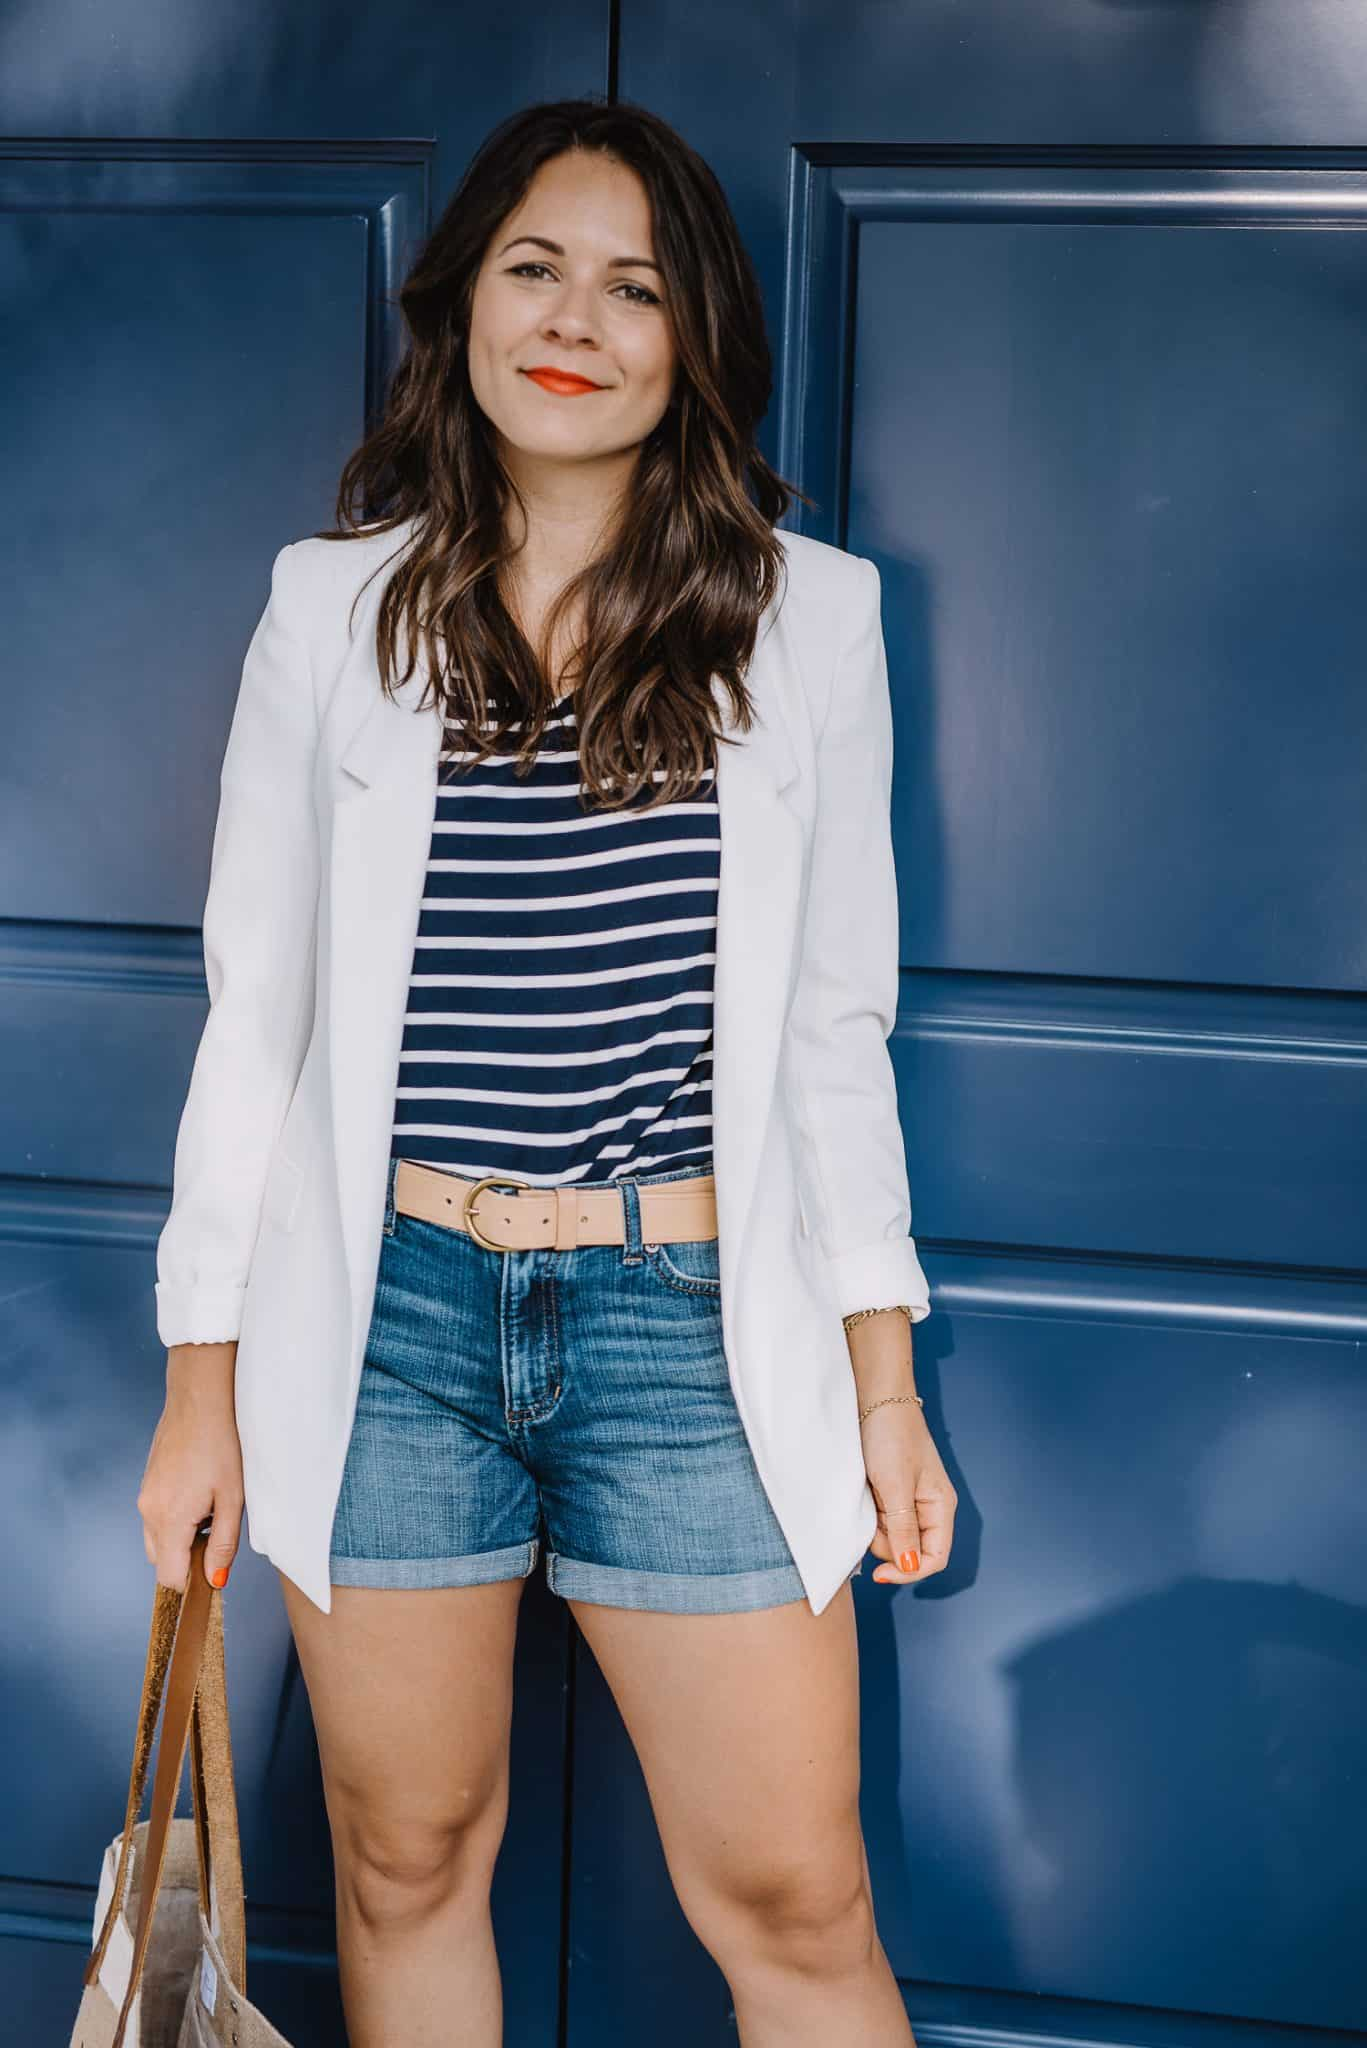 352f20cd55a0 My Take On A White Blazer With Denim Shorts For Summer - My Style Vita